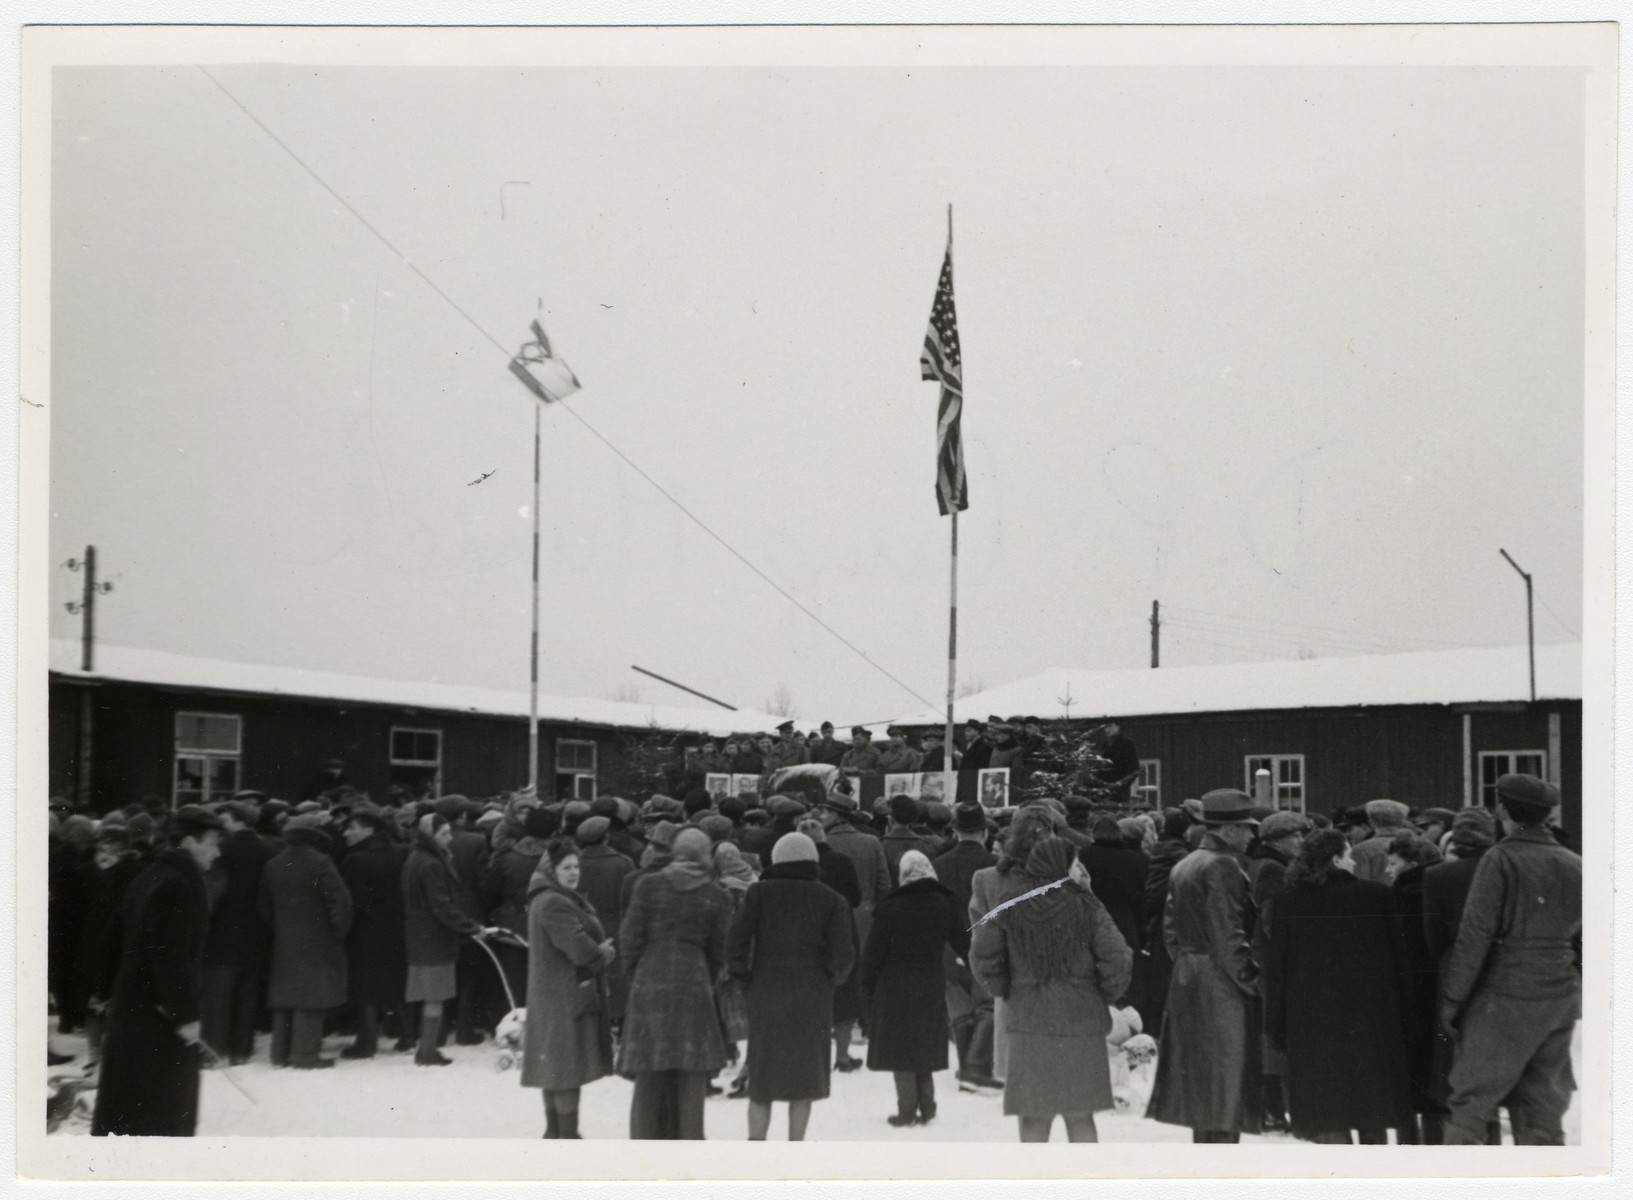 Jewish displaced persons in Munich attend a rally in the snow in an open courtyard with both American and Israeli flags flying.